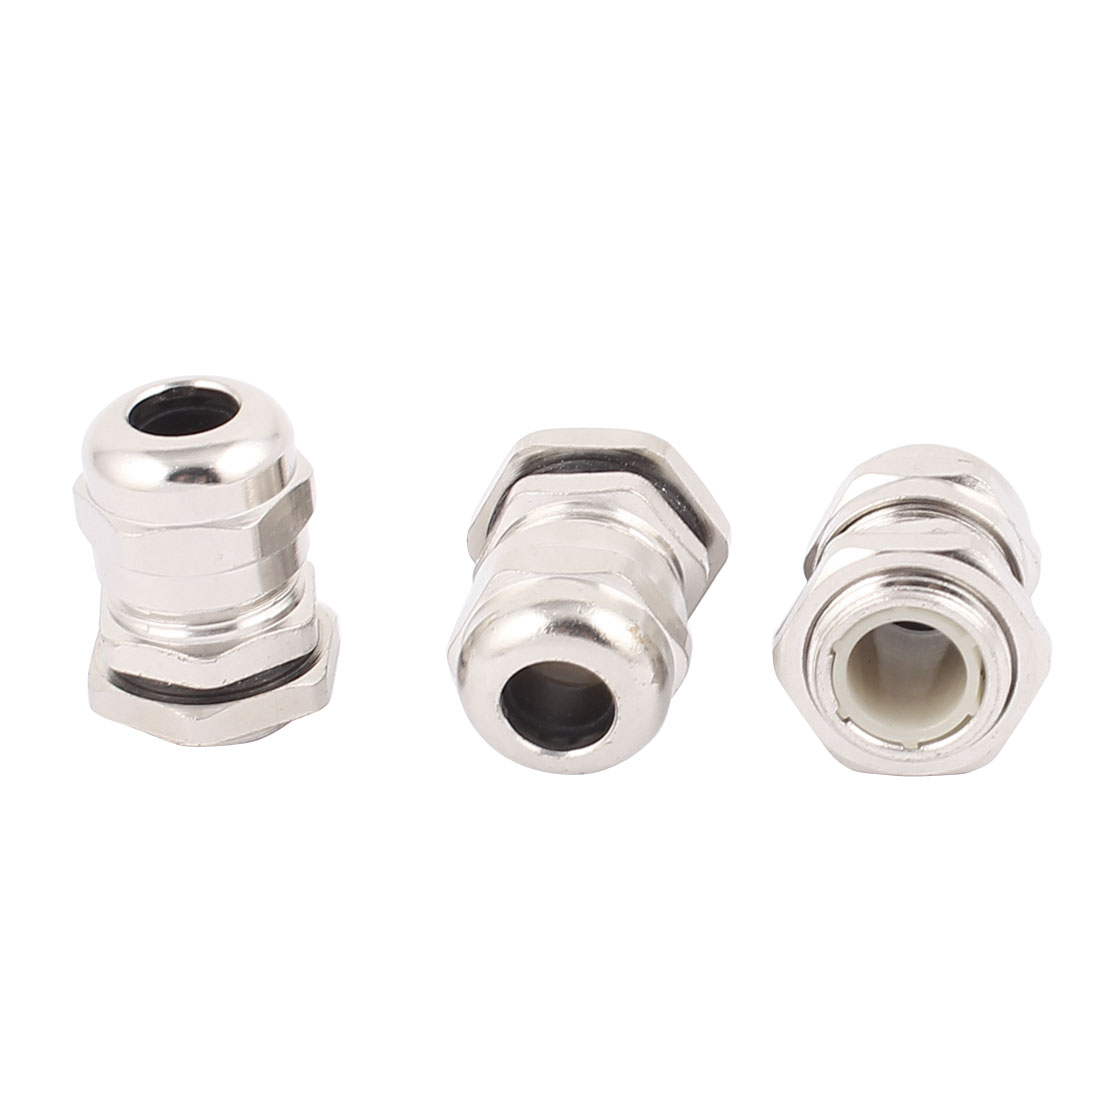 3Pcs Stainless Steel PG9 Waterproof Connector Glands for 4-8mm Dia Cables